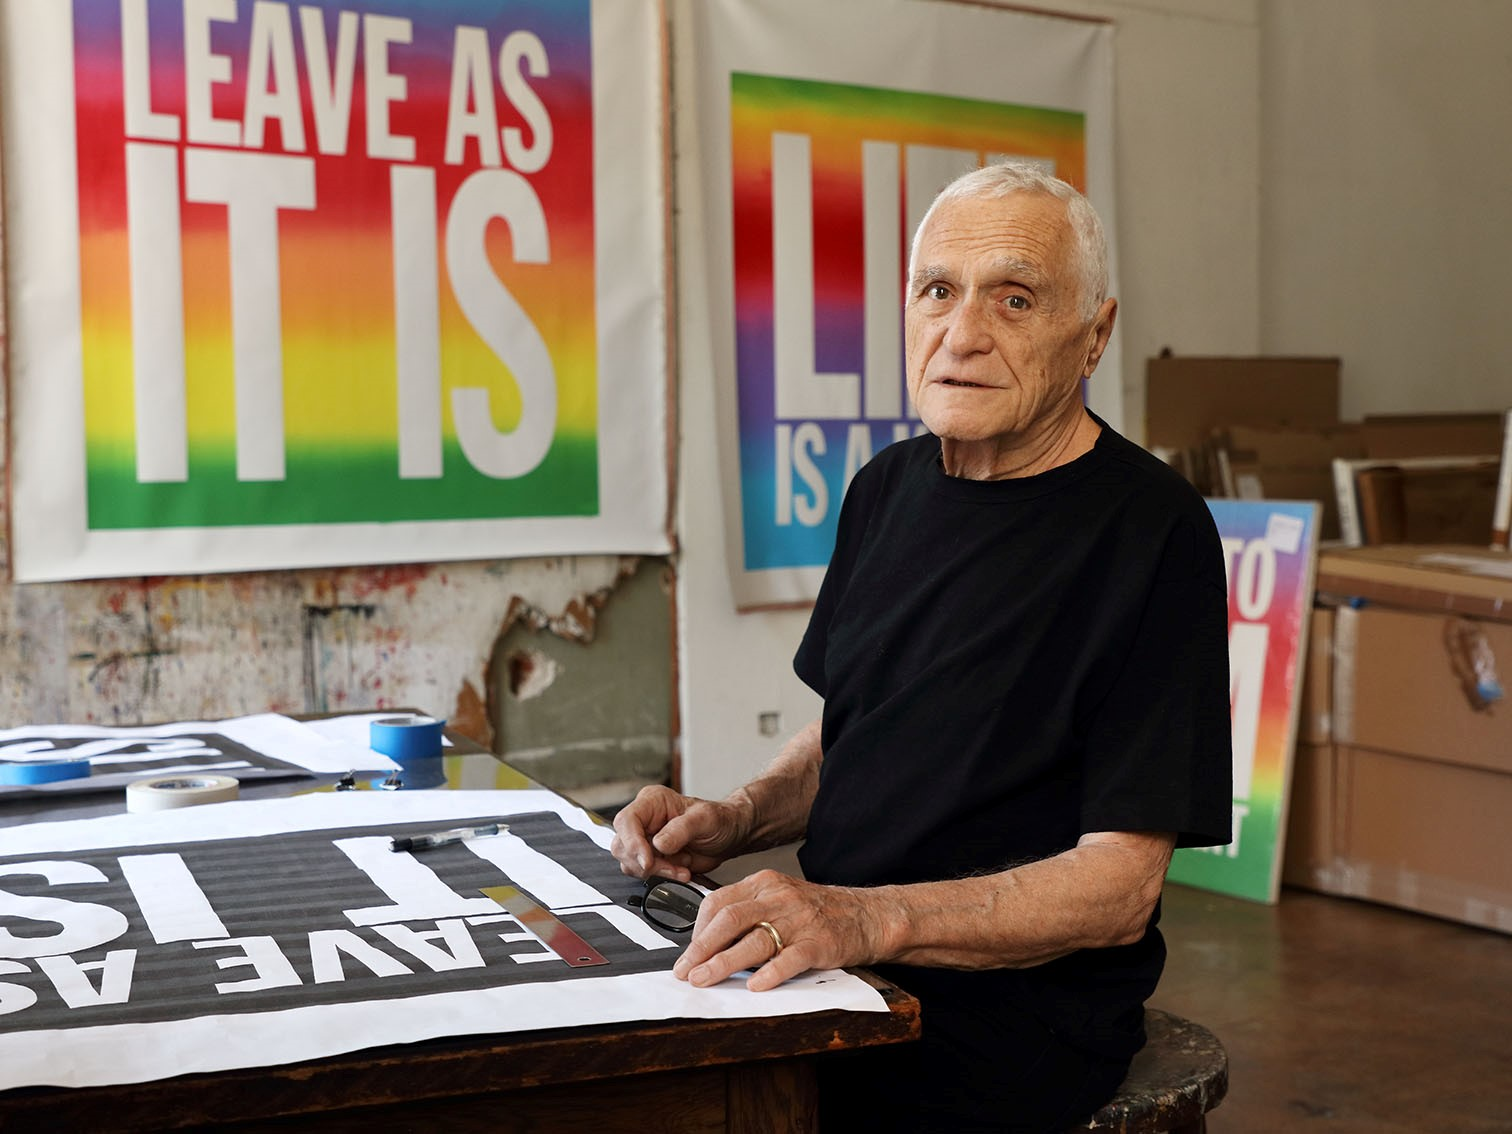 John Giorno, Storied Artist Who Expanded Poetry's Possibilities, Is Dead at 82